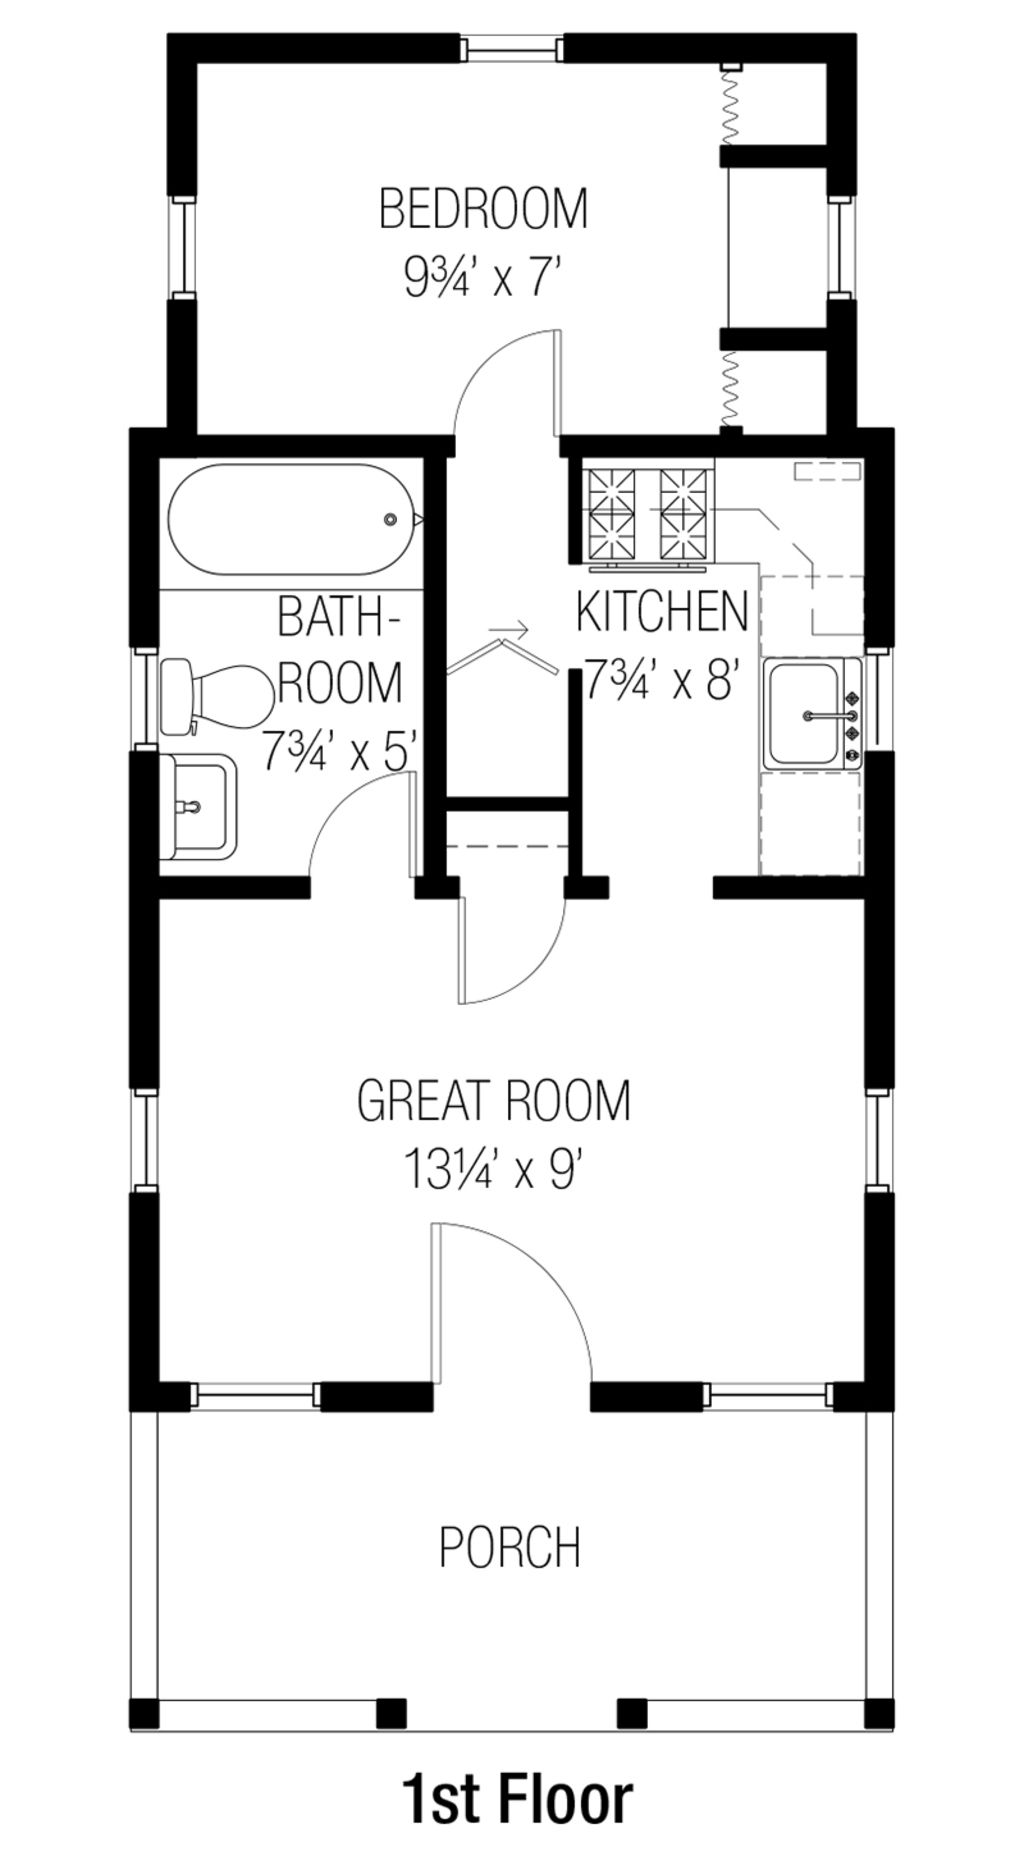 Bungalow Style House Plan 1 Beds 1 Baths 356 Sq Ft Plan